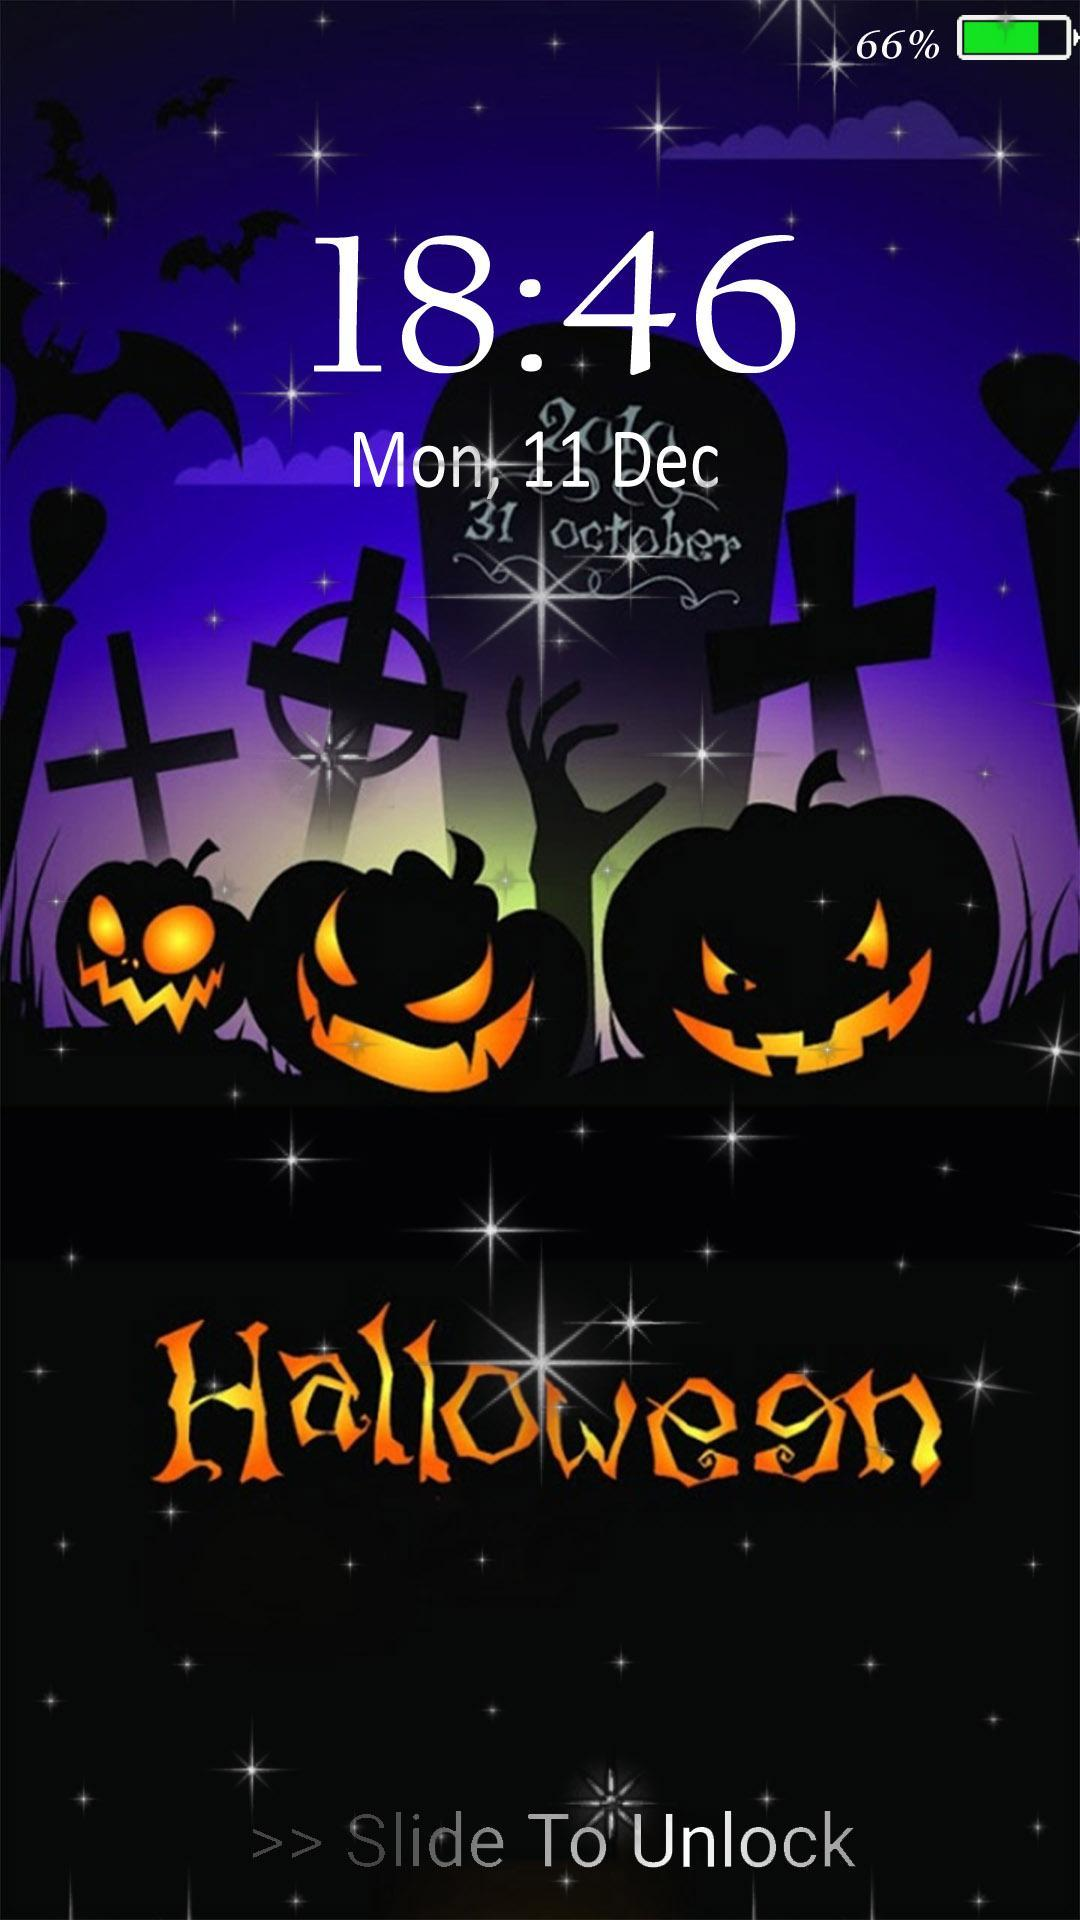 Happy Halloween Live Wallpaper Lock Screen For Android Apk